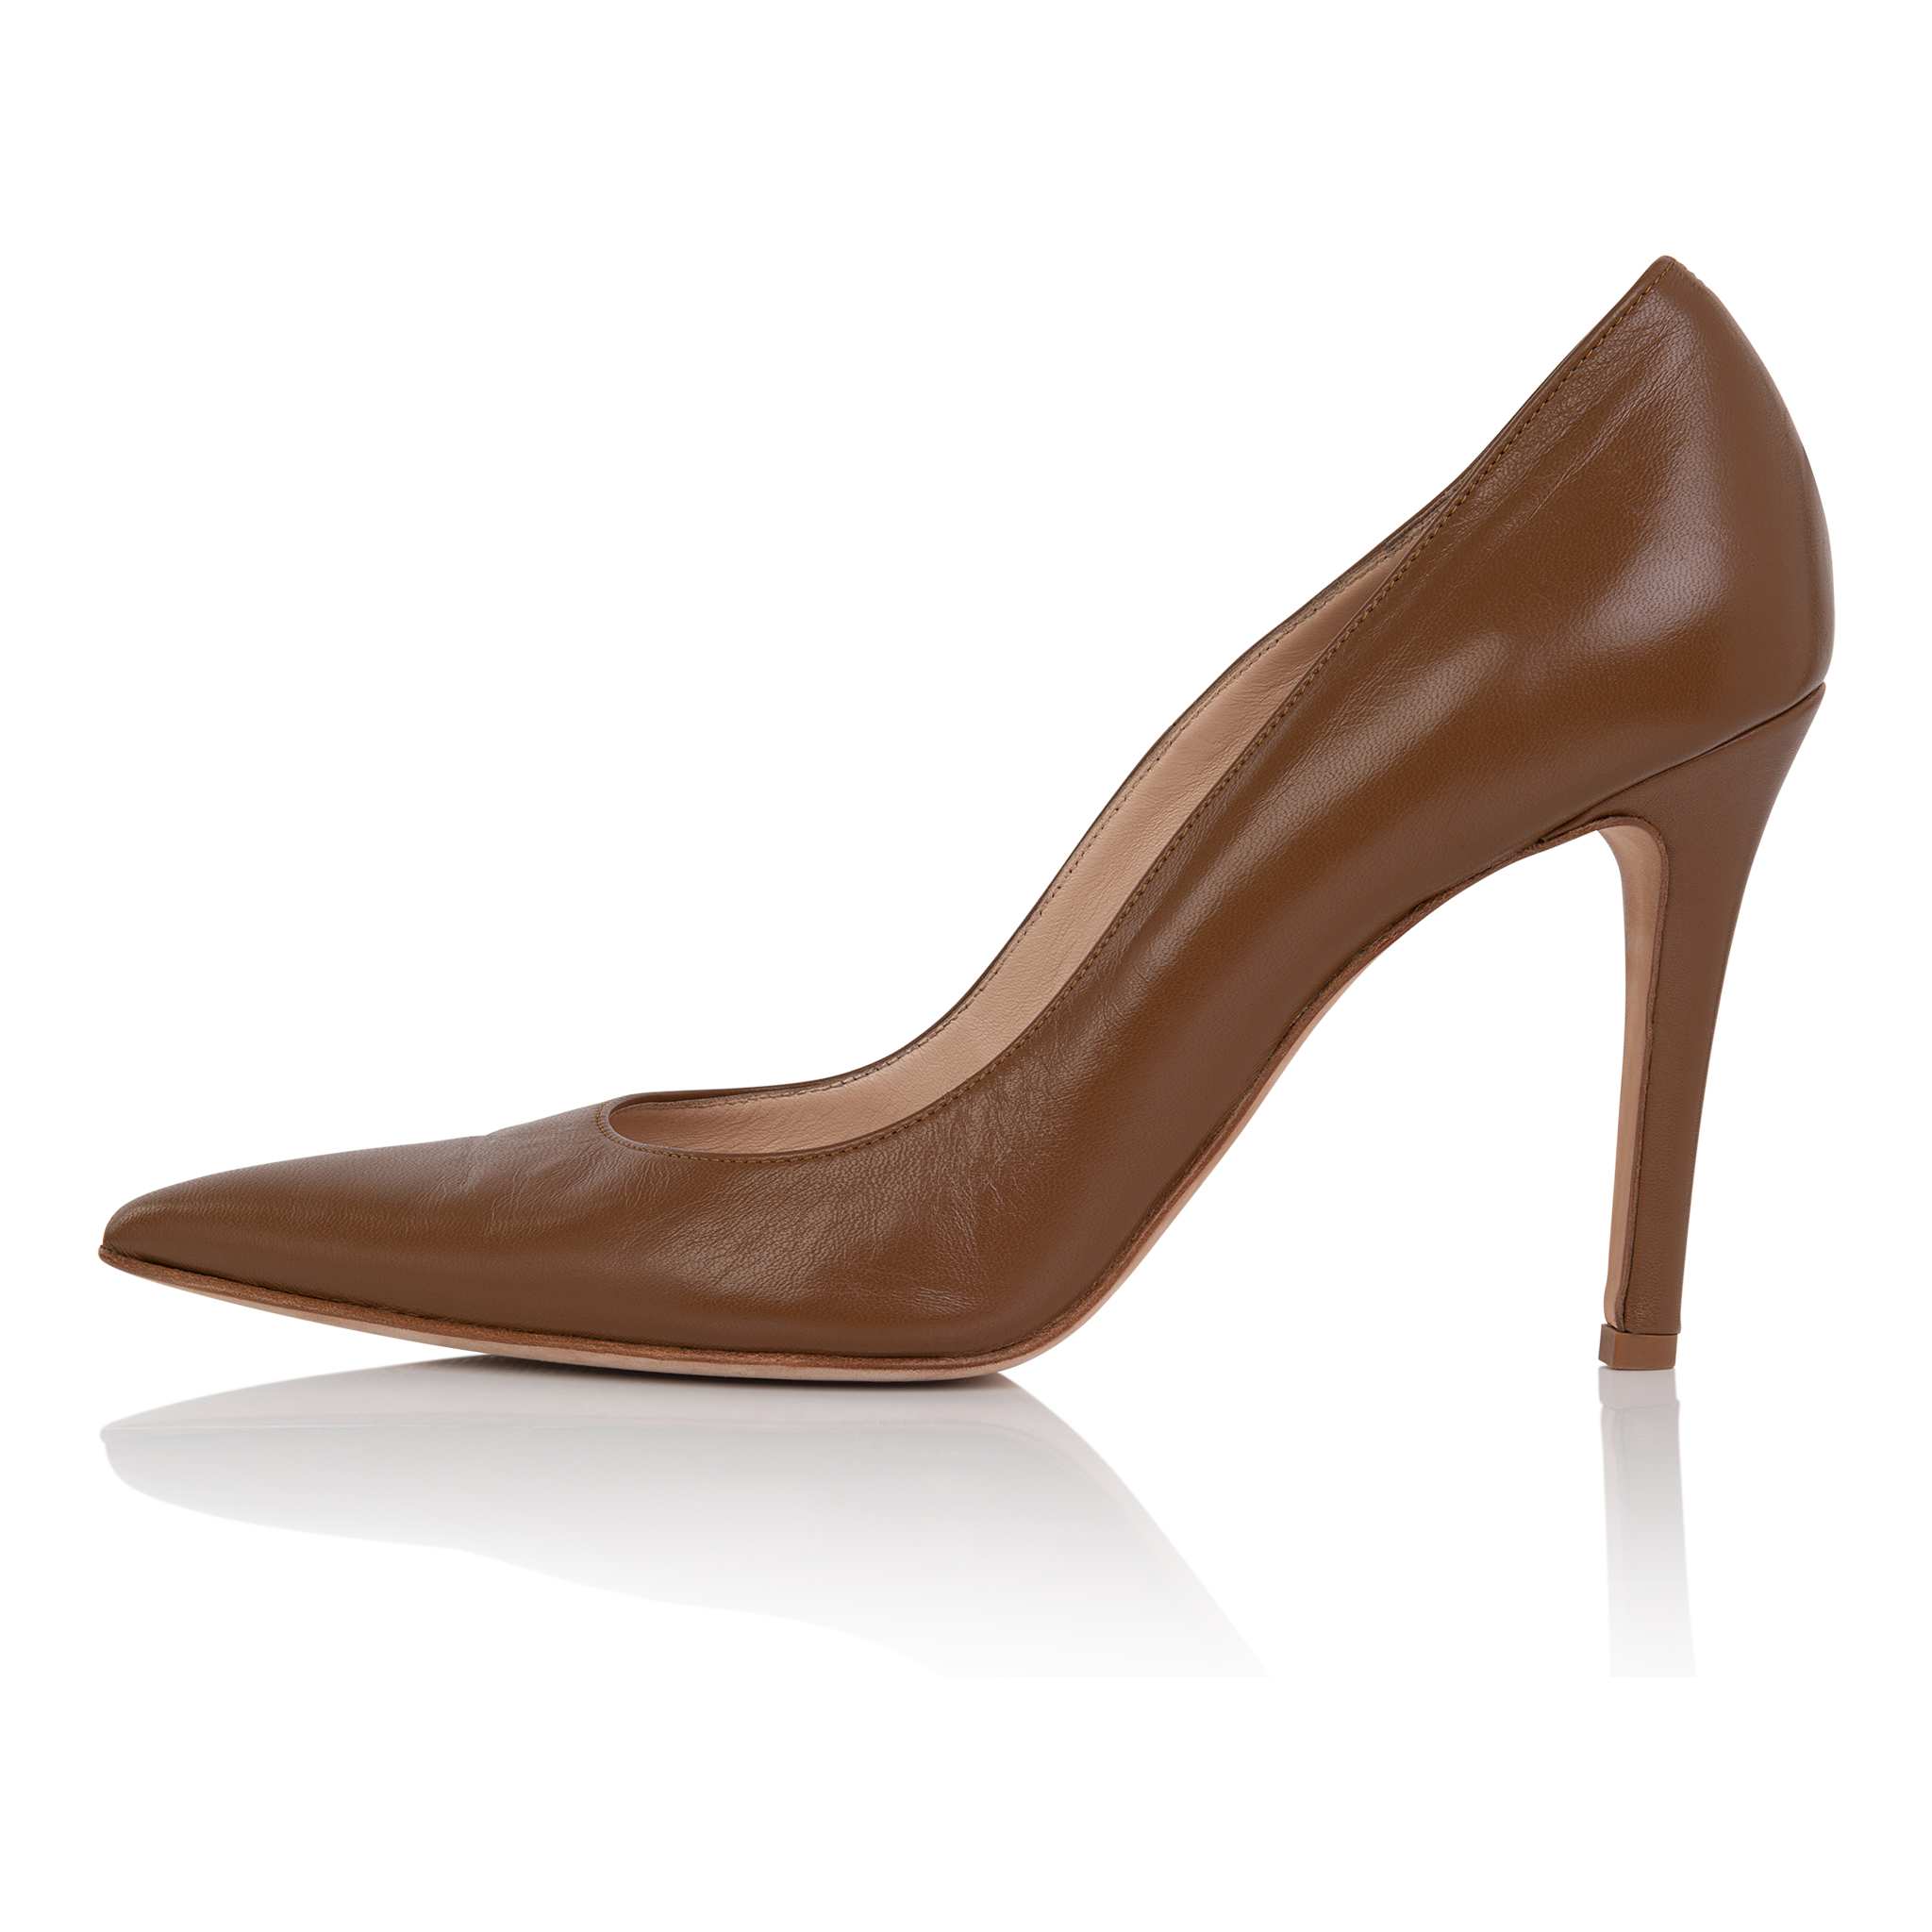 Becky Pump 90mm - 3.3in